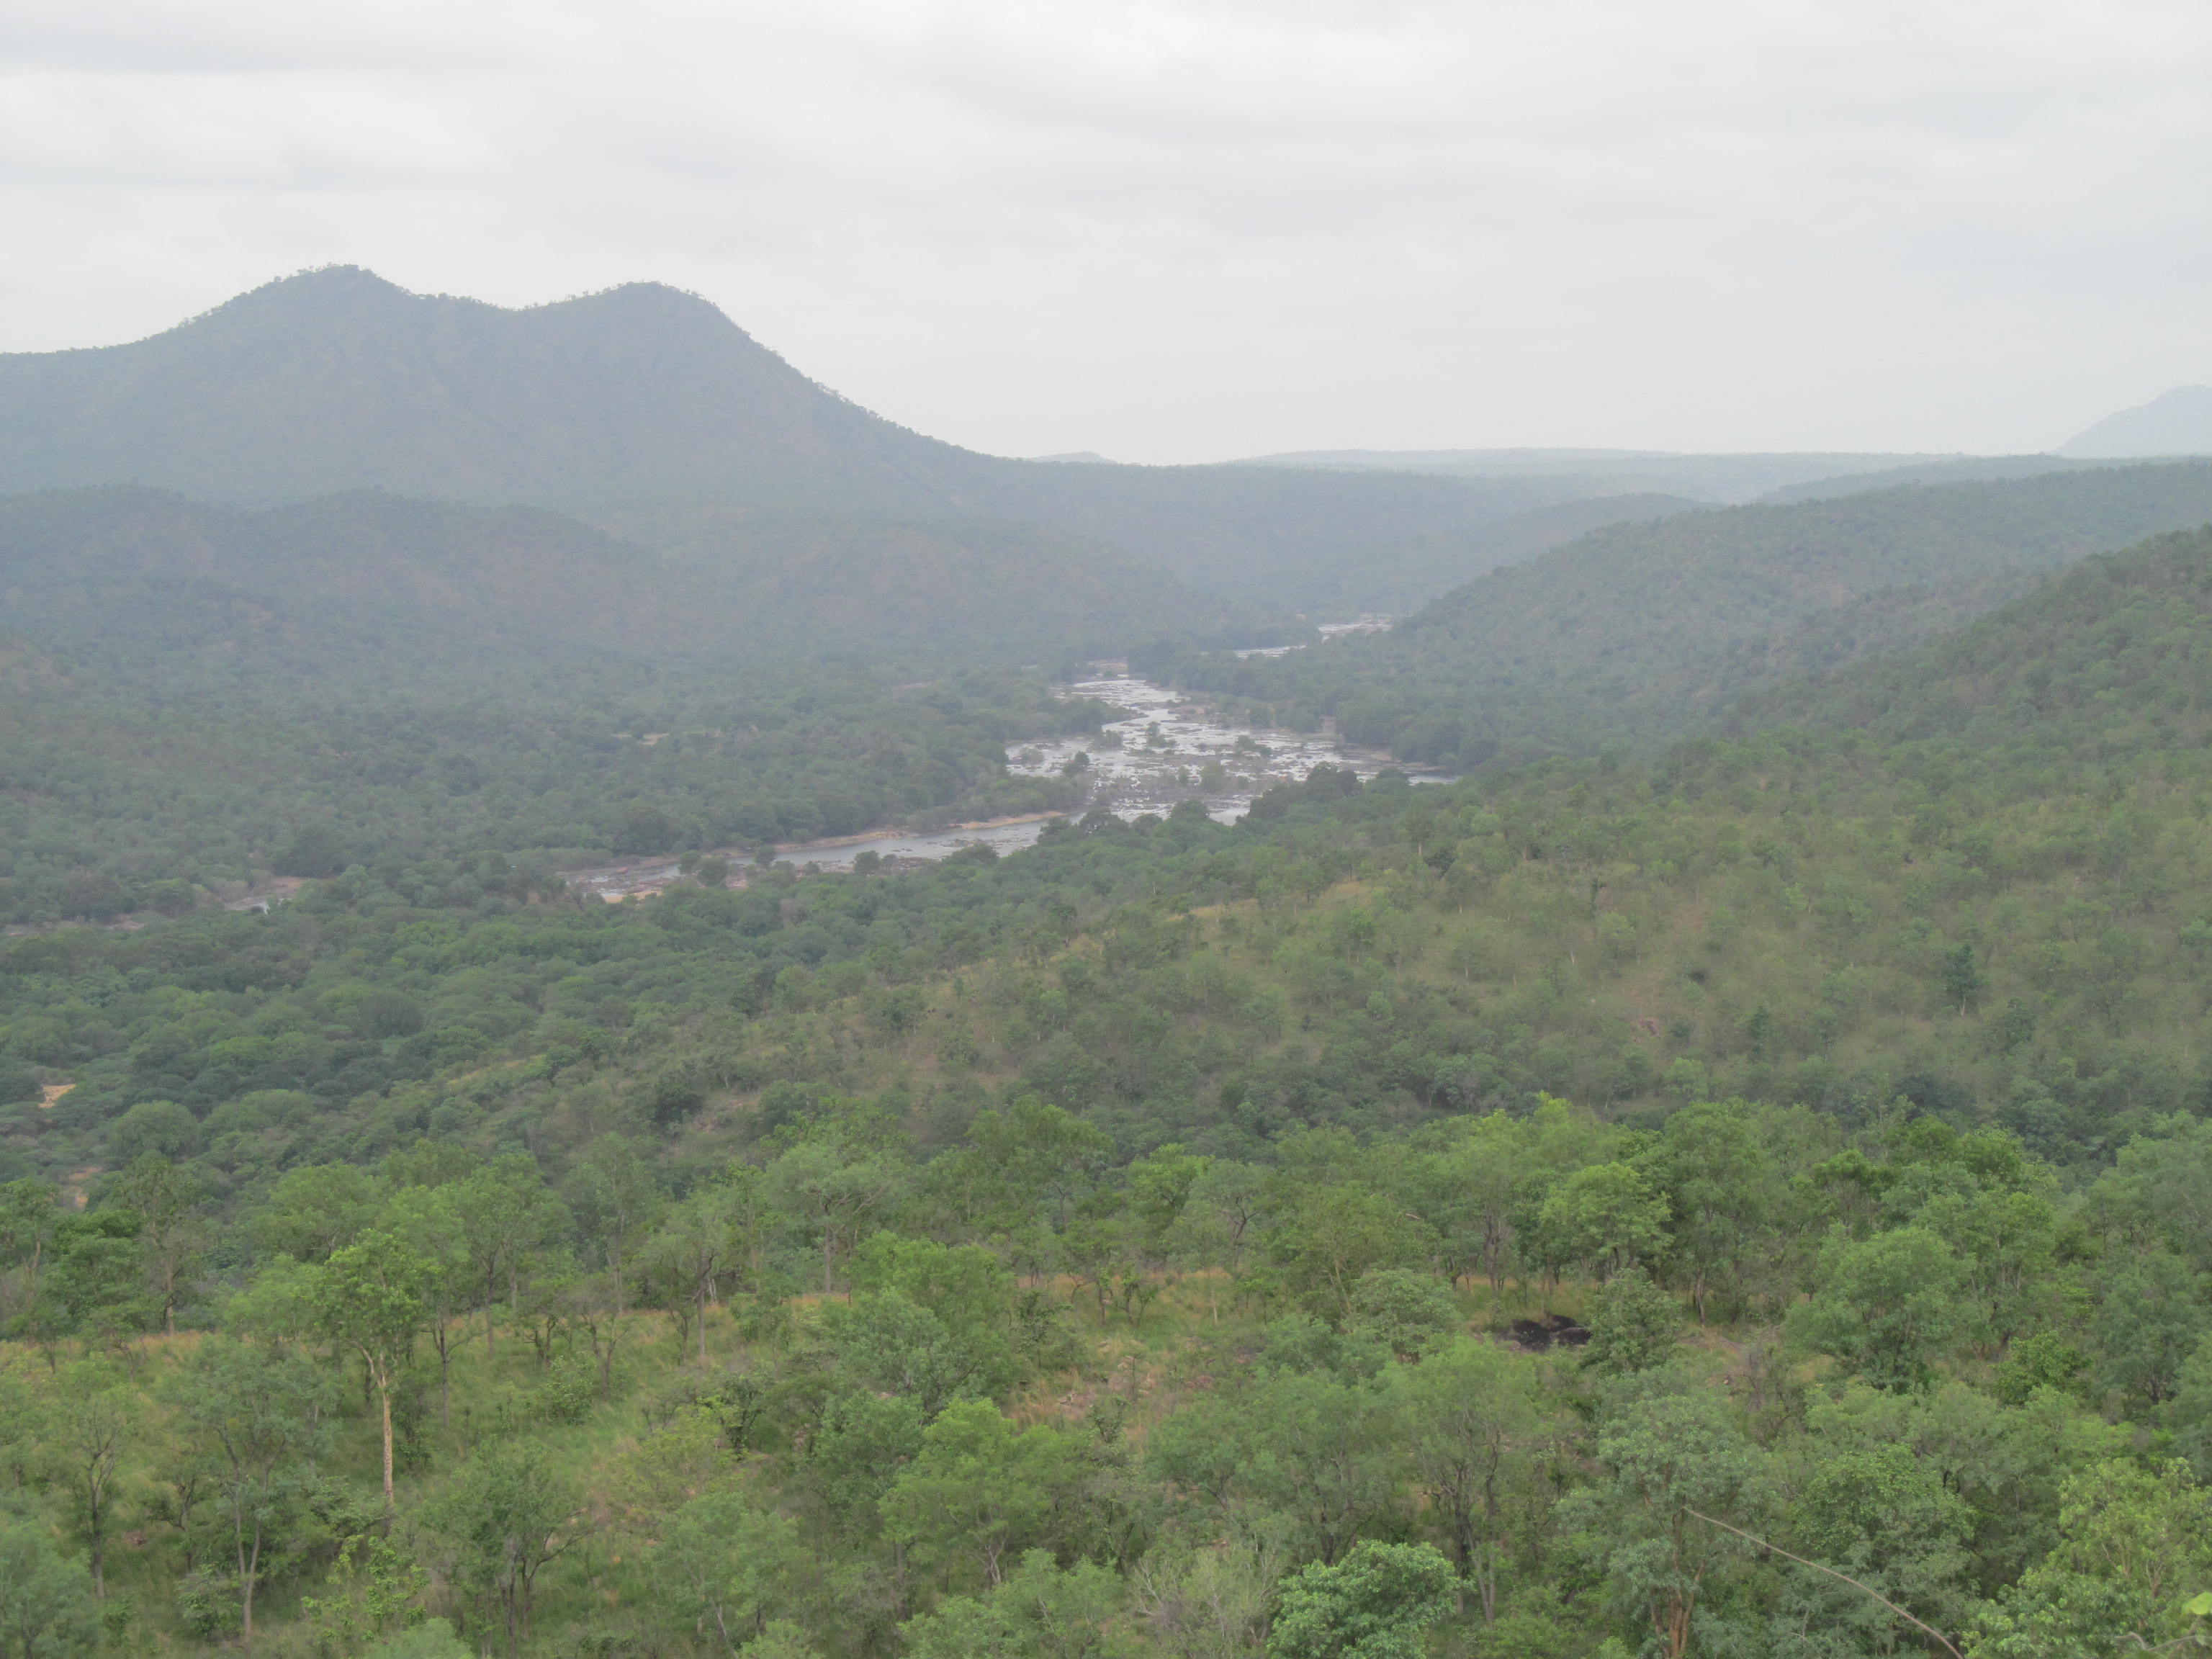 Cauvery Wildlife Sanctuary